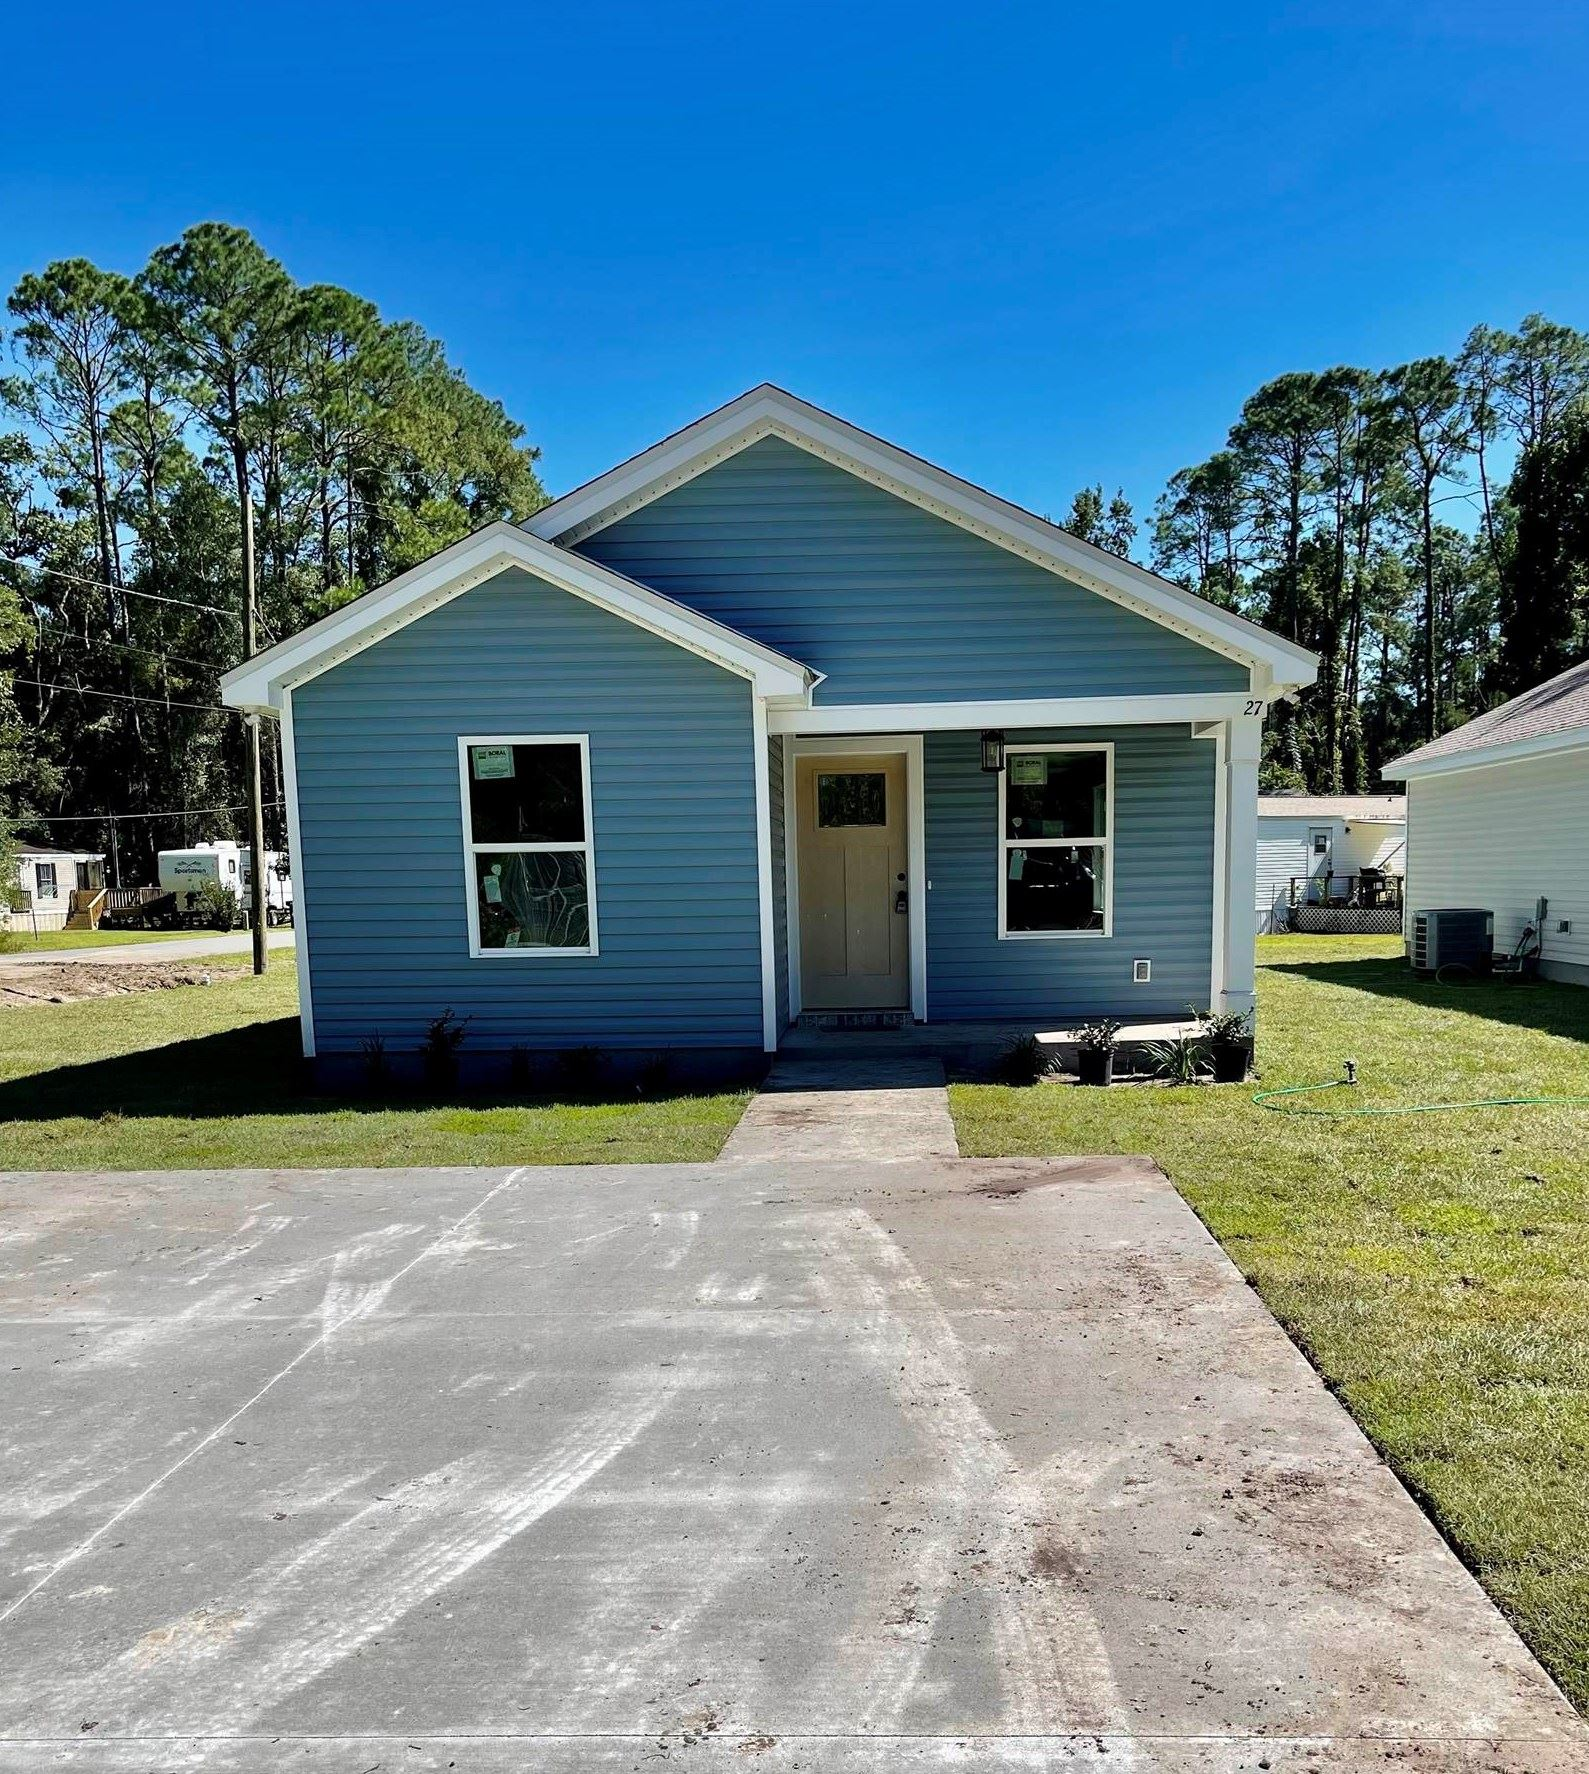 Lot 11 Sudai Street, Crawfordville, FL 32327 - MLS#: 331276